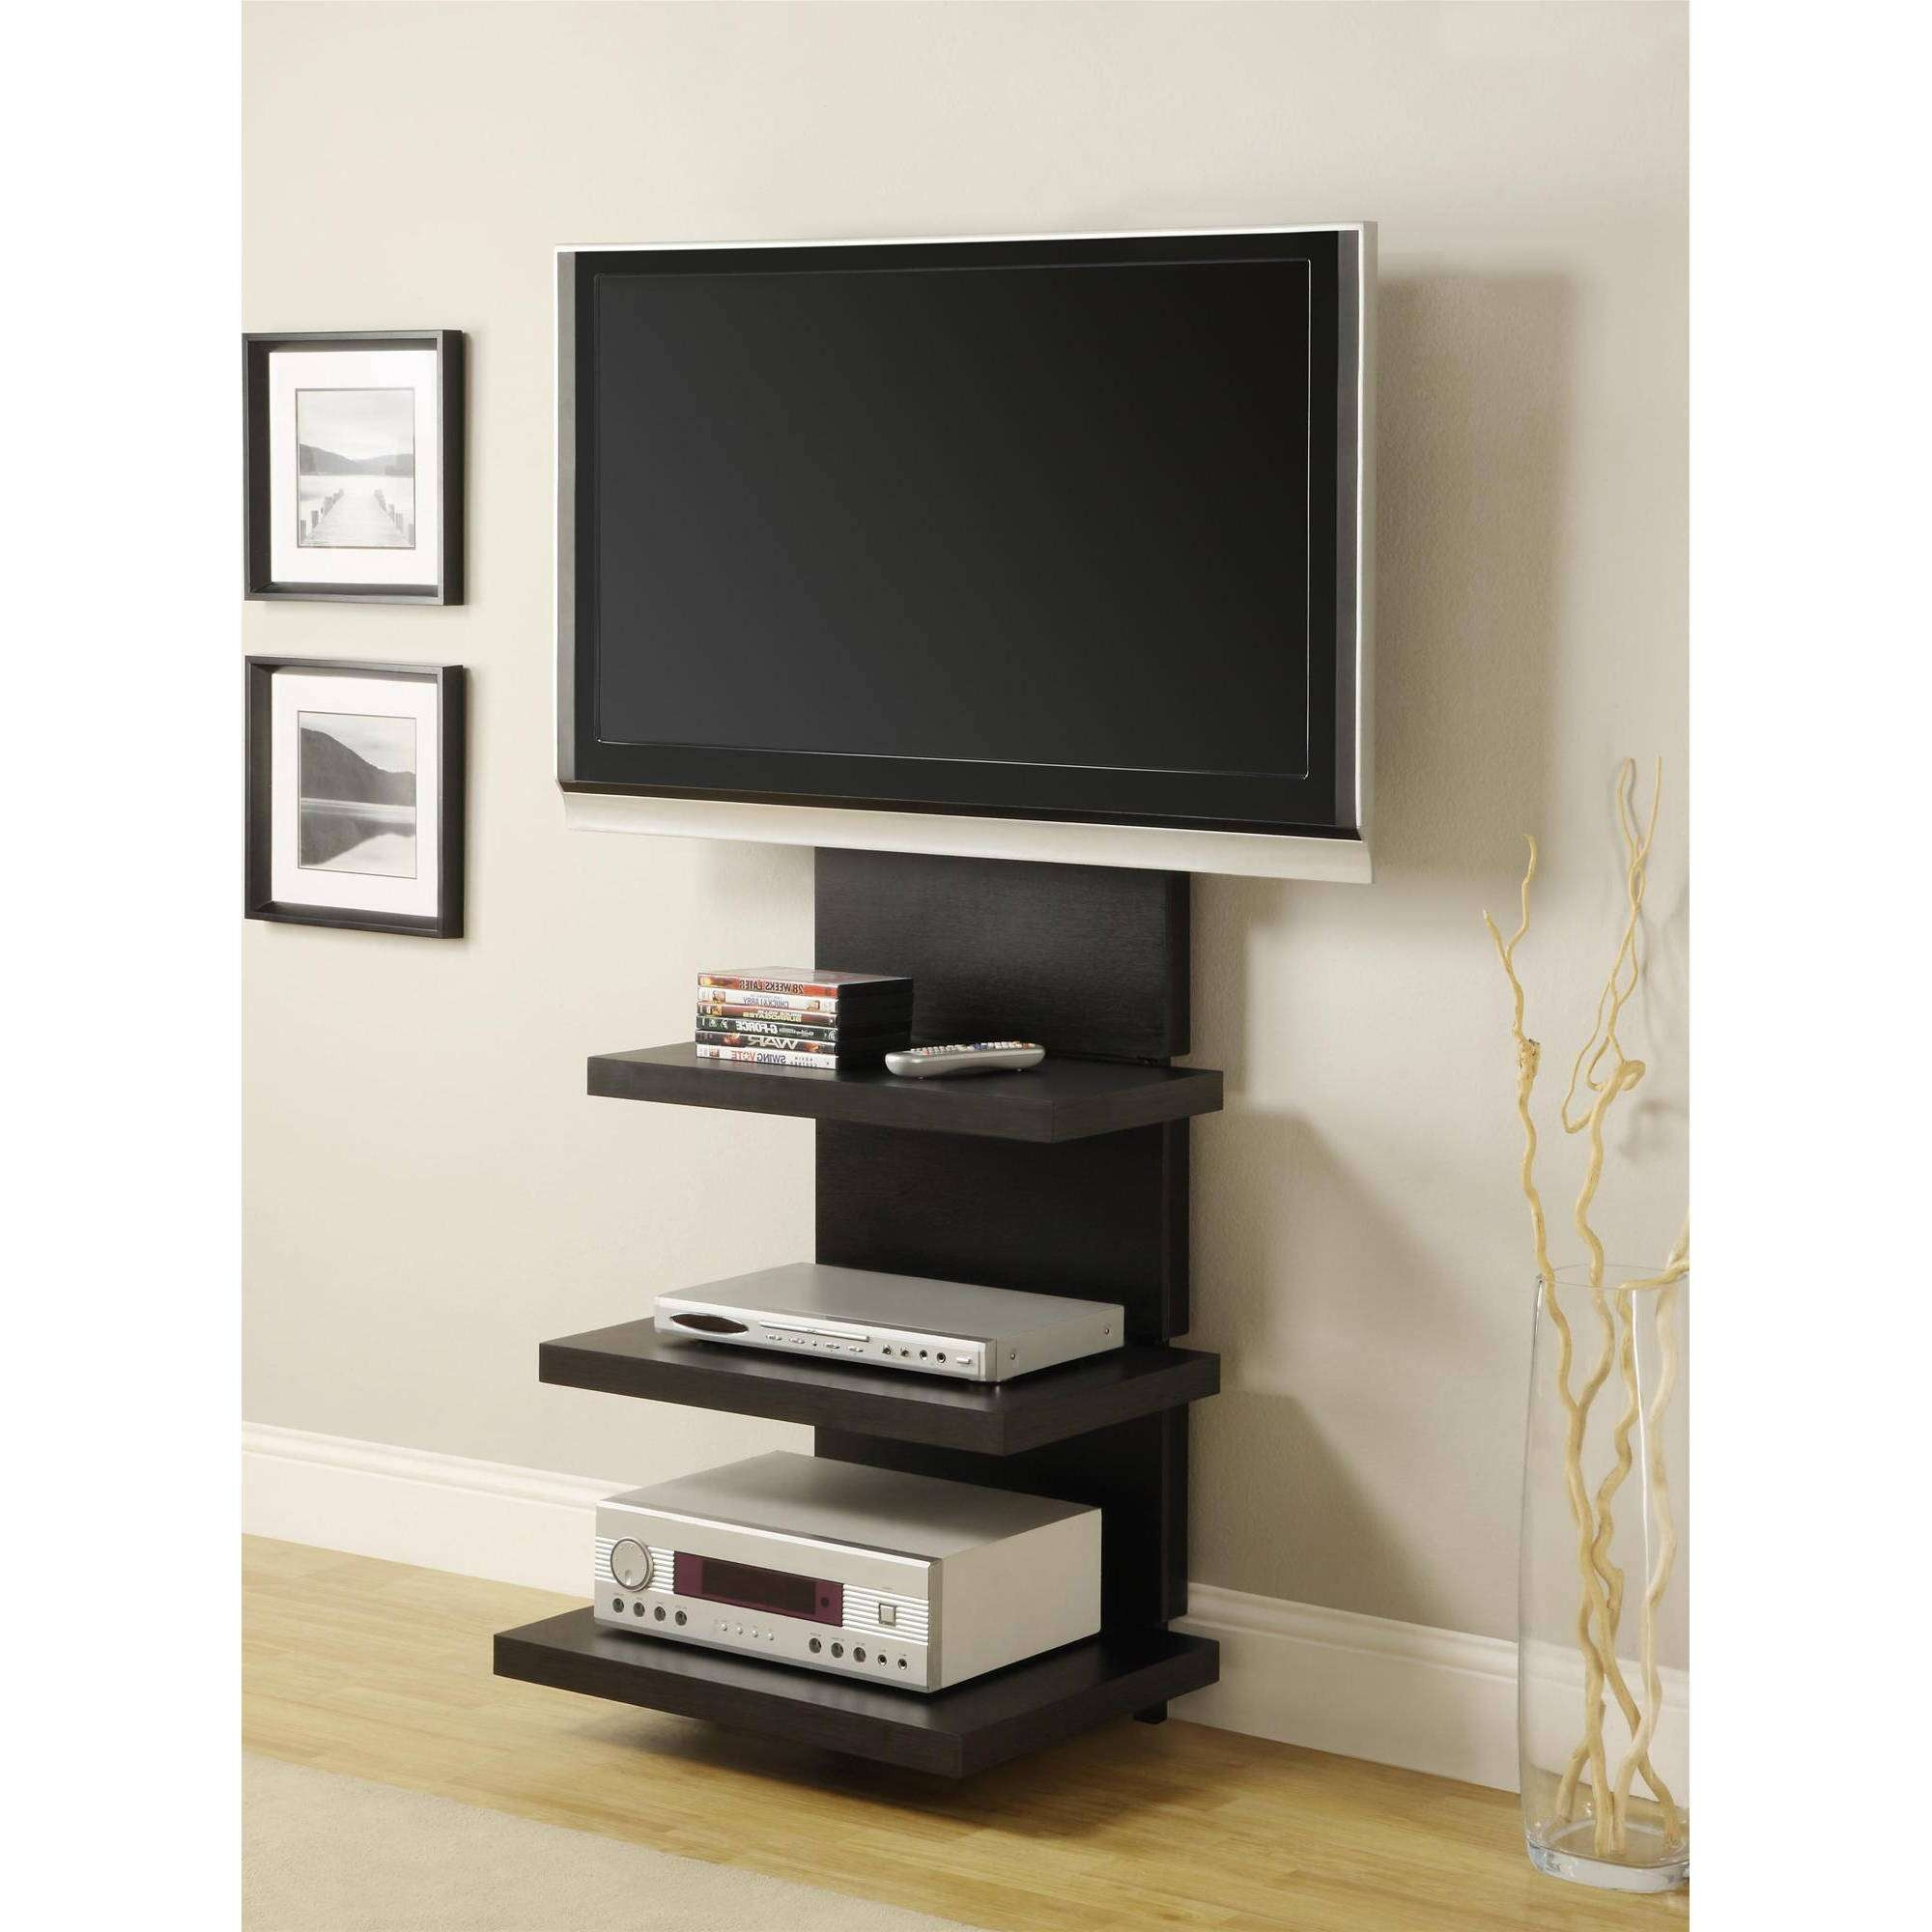 Ameriwood Home Elevation Altramount Tv Stand For Tvs Up To 60 Inside 24 Inch Wide Tv Stands (View 1 of 15)